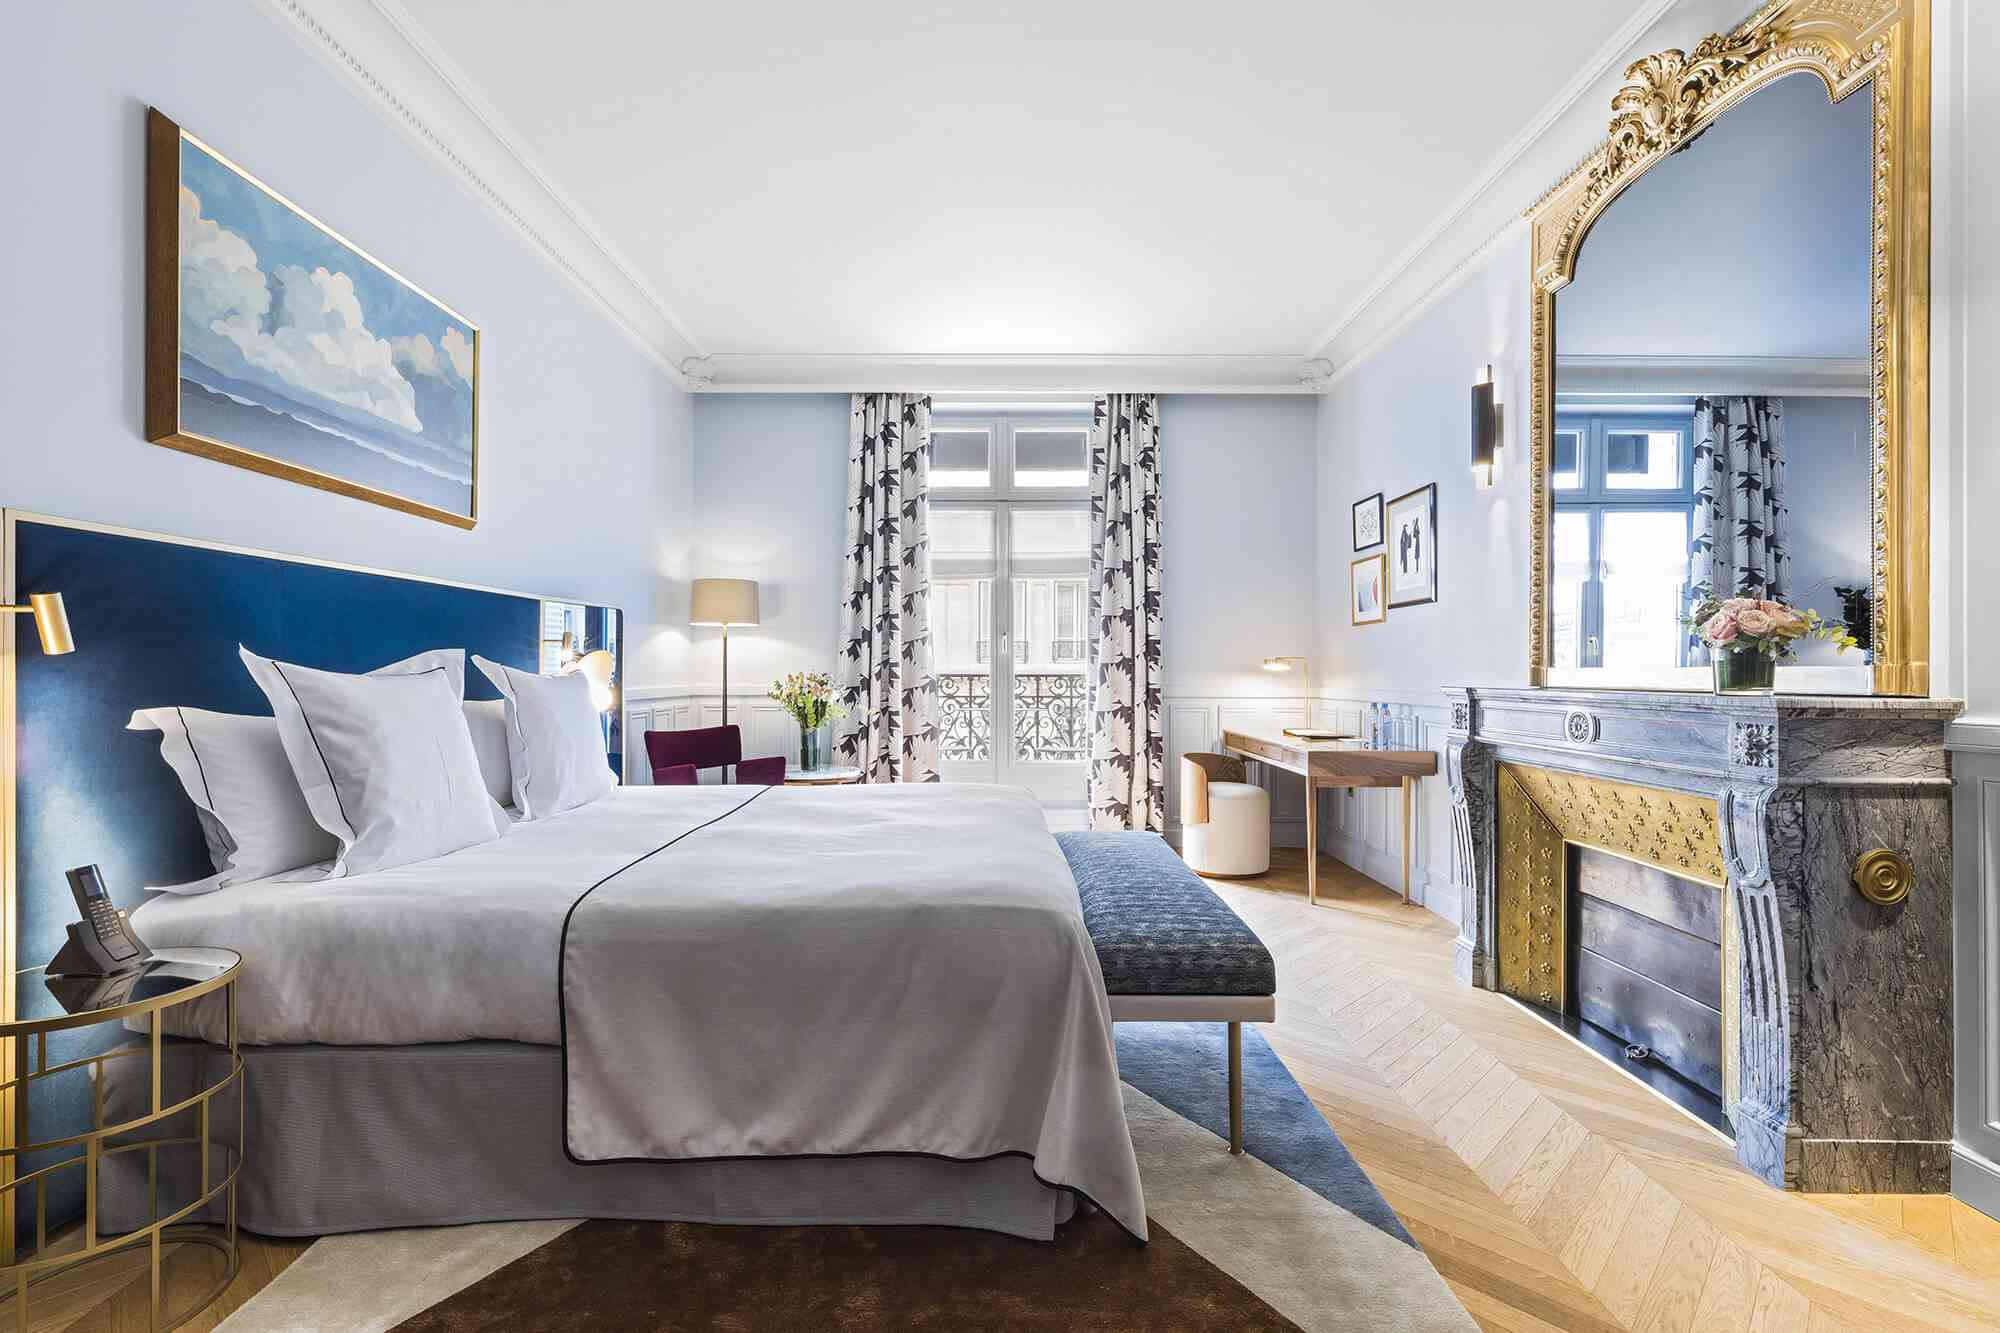 Hotel bed on a blue headboard across from a large gilded mirror on vanity, in front of patio doors on back wall